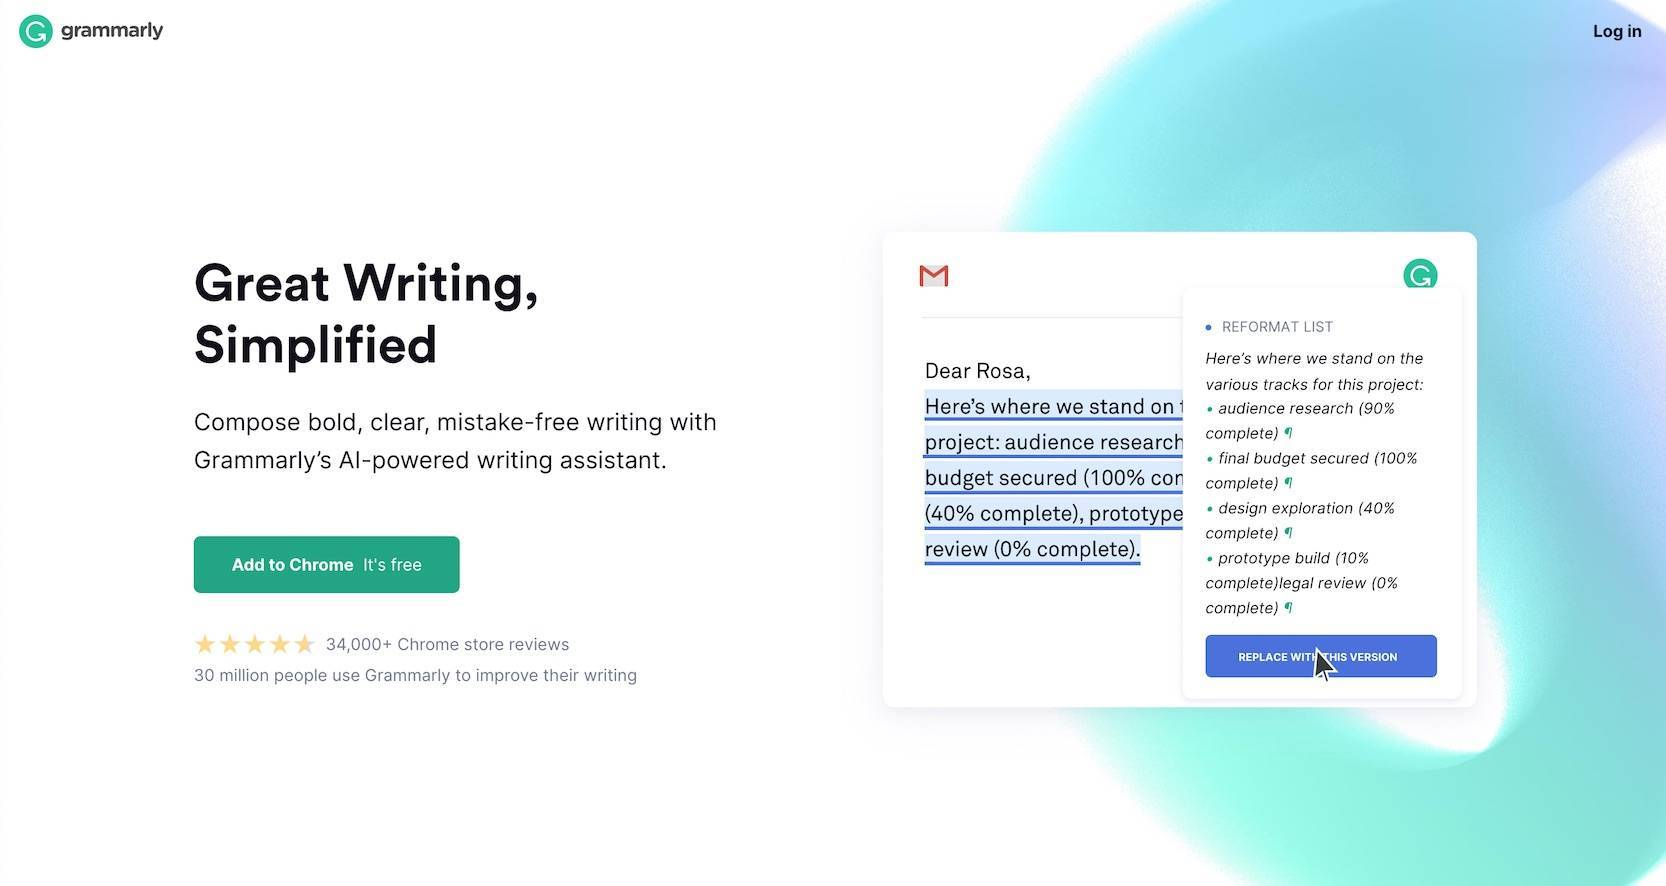 the b2b website home page for Grammarly that effectively uses web design elements to tell a story to users